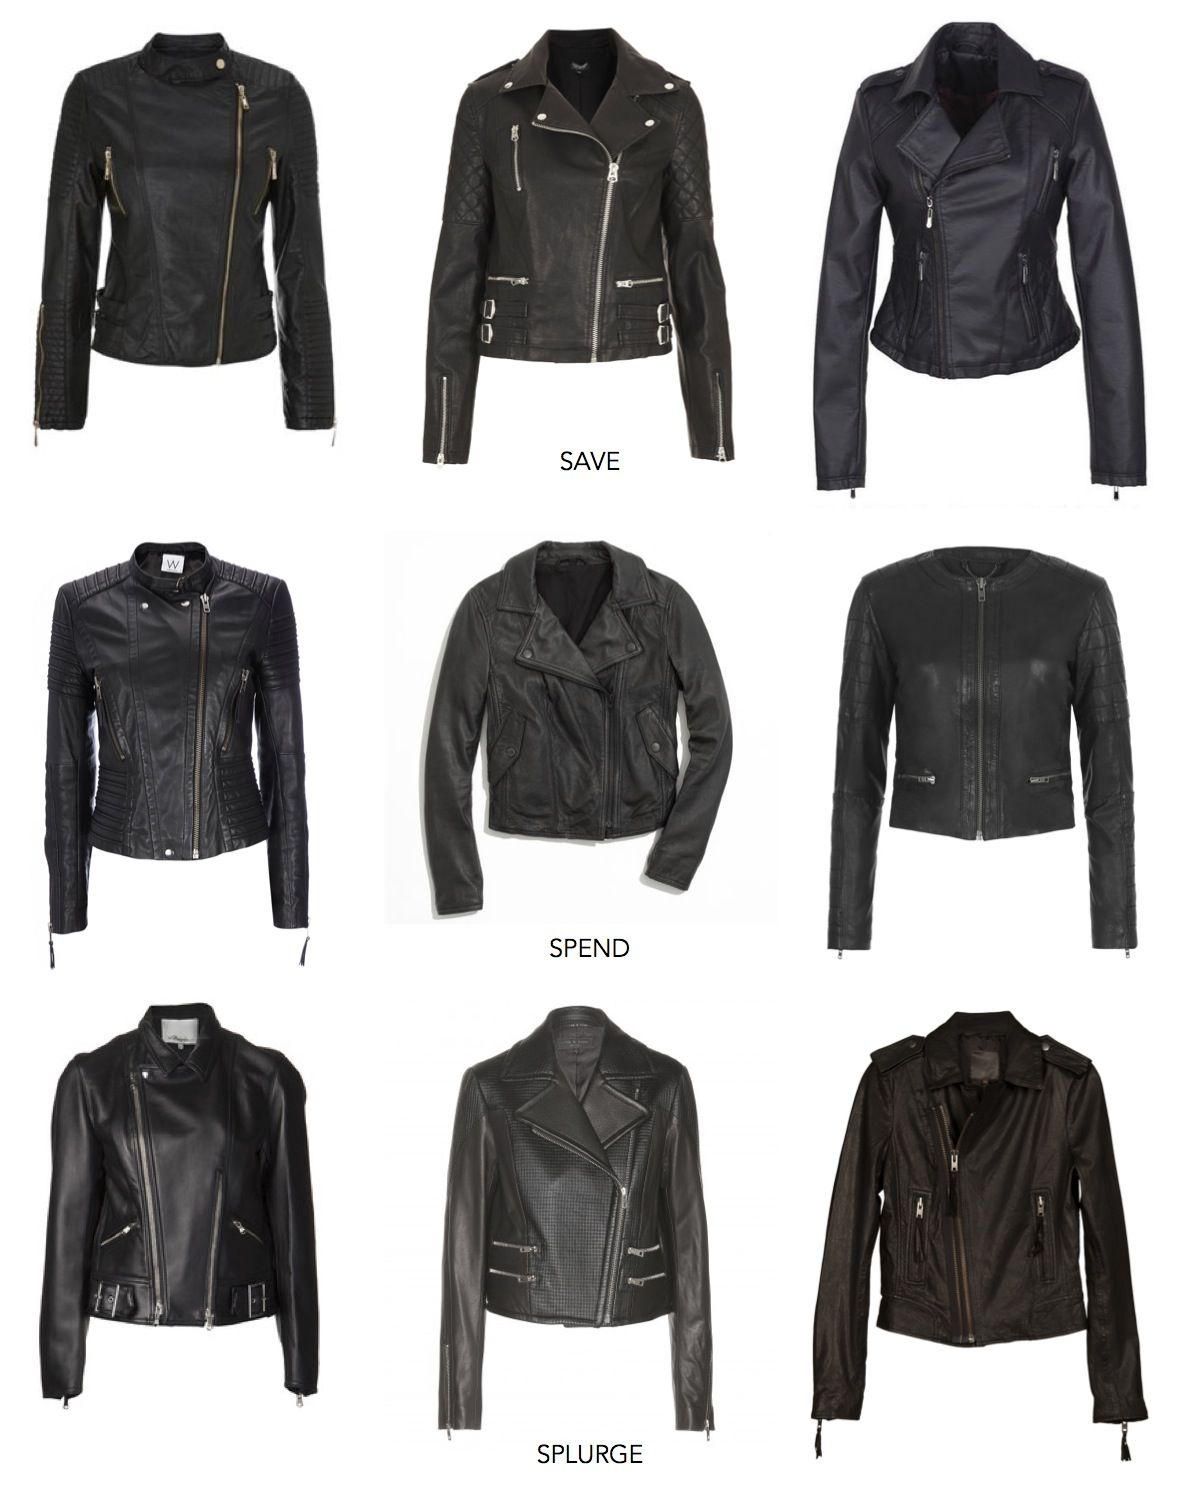 Leather Jackets. I like top left and top right | My Style ...